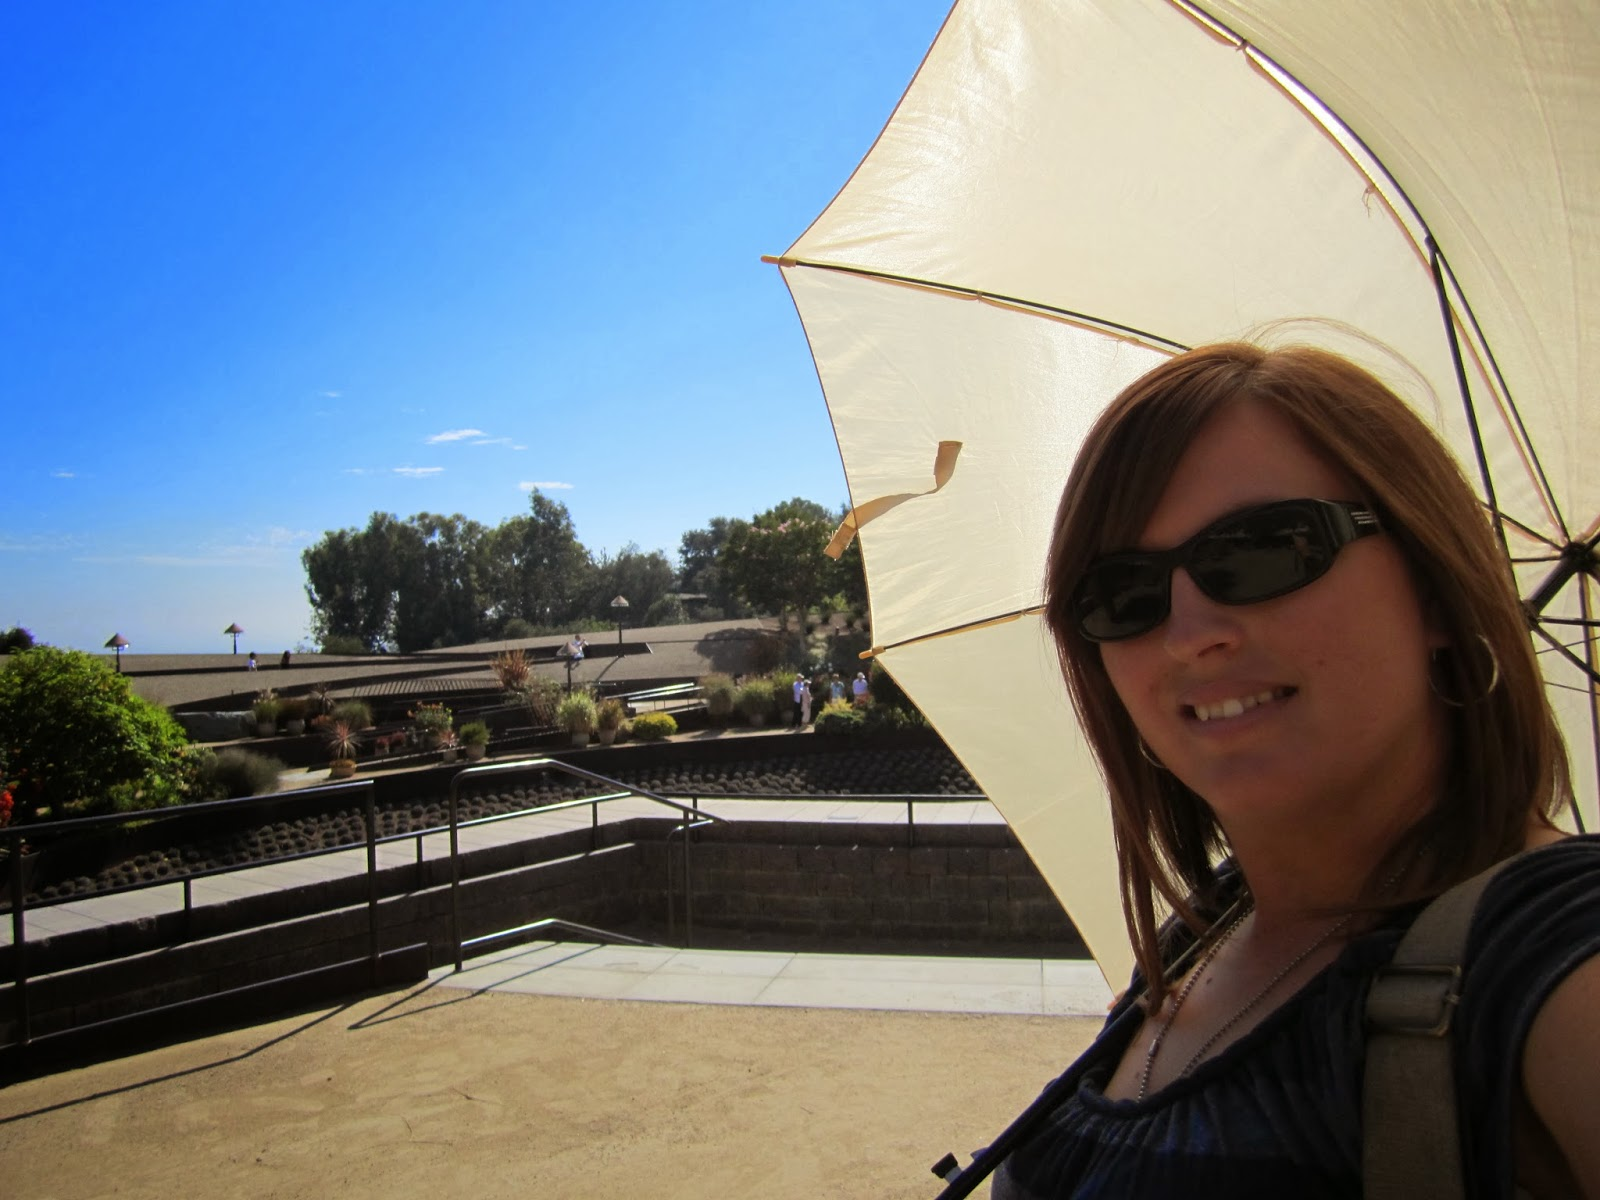 woman with umbrells, sunny, smiling